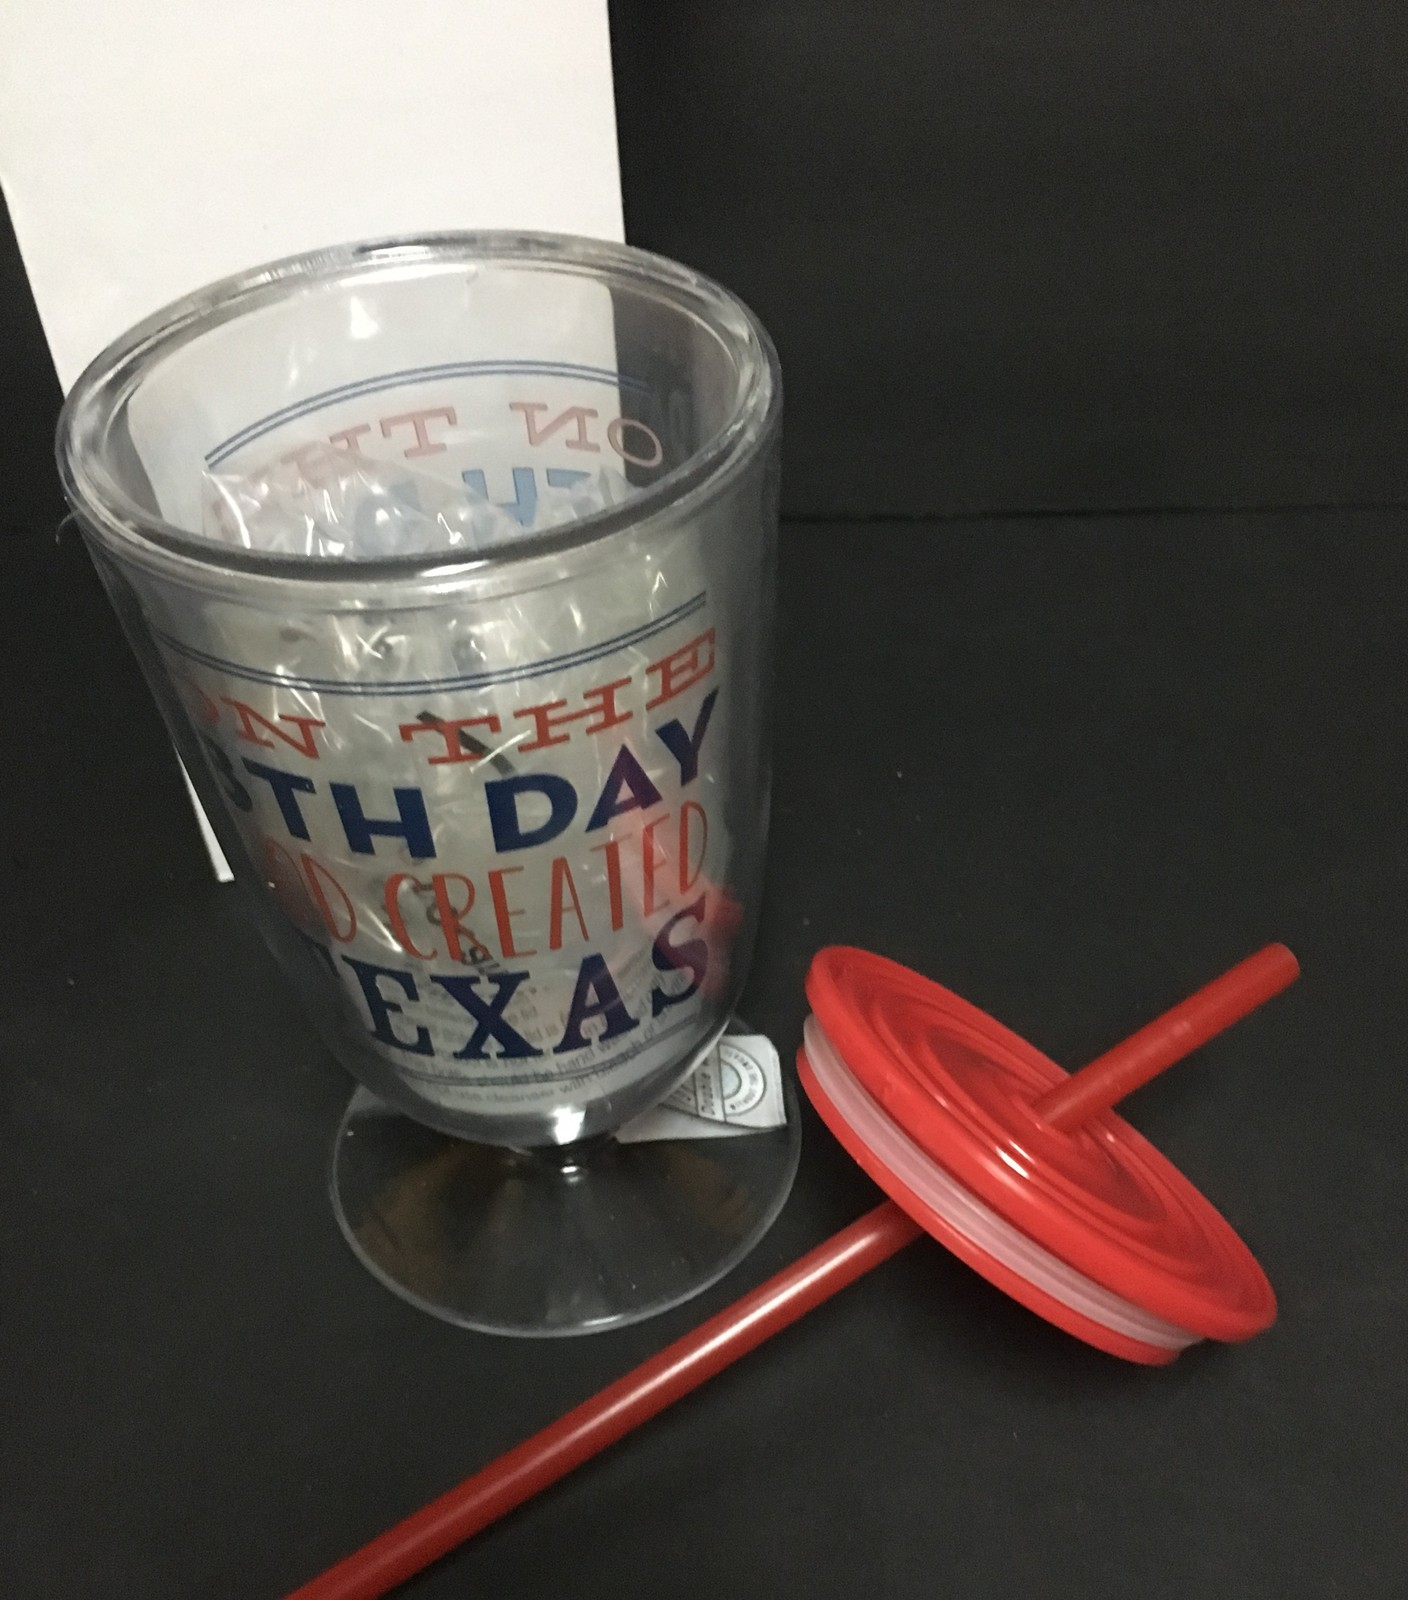 ON THE 8TH DAY GOD CREATED TEXAS 8 OZ Ice Tea Beverage Cup